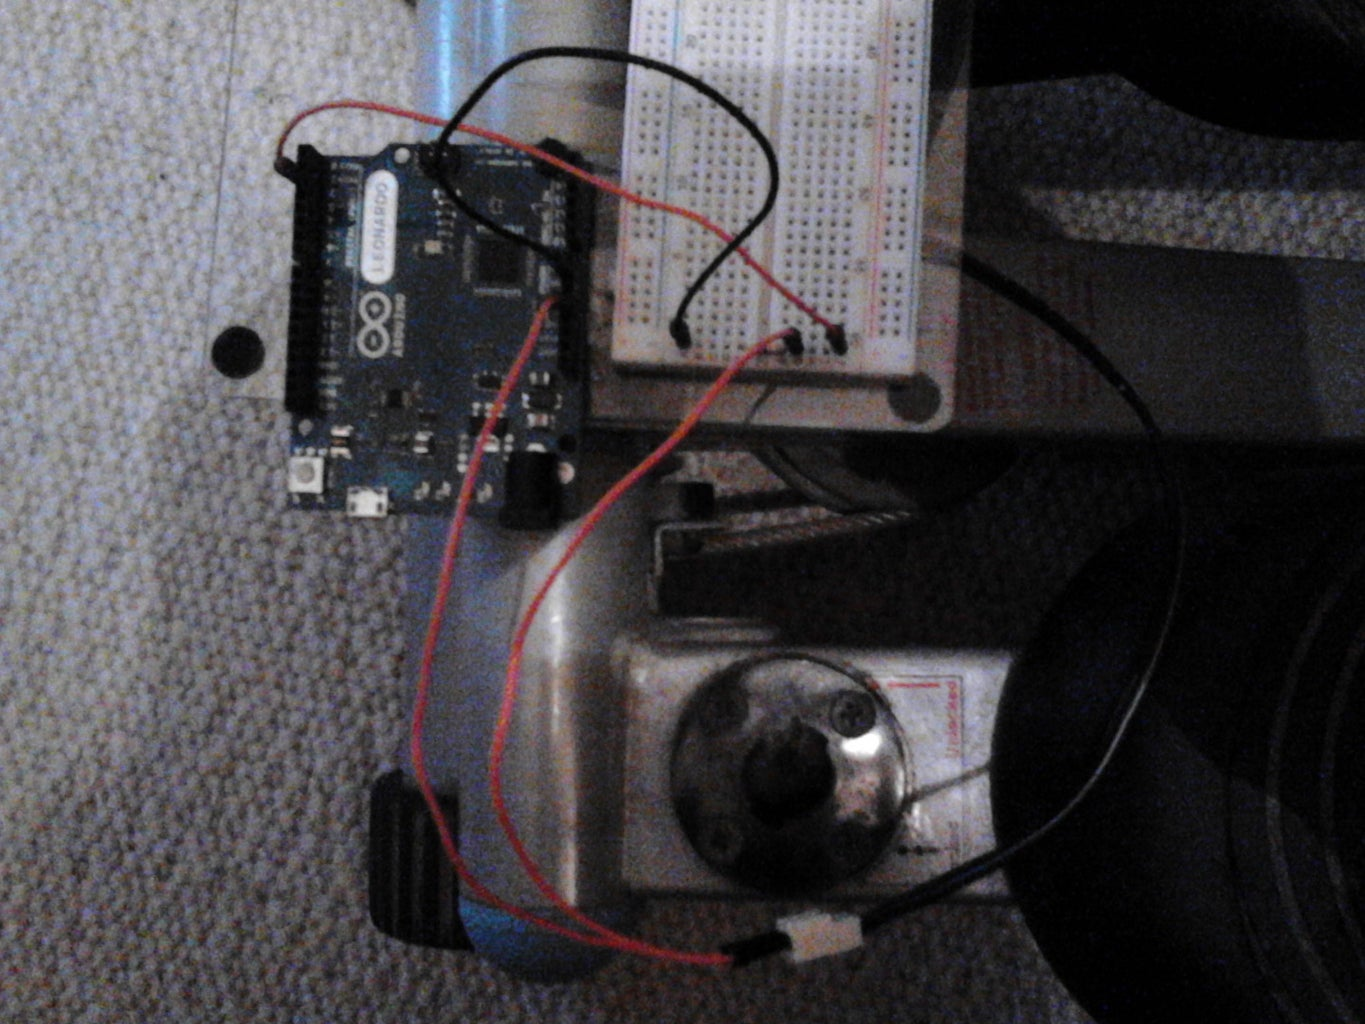 Connect the Stepper With the Arduino.